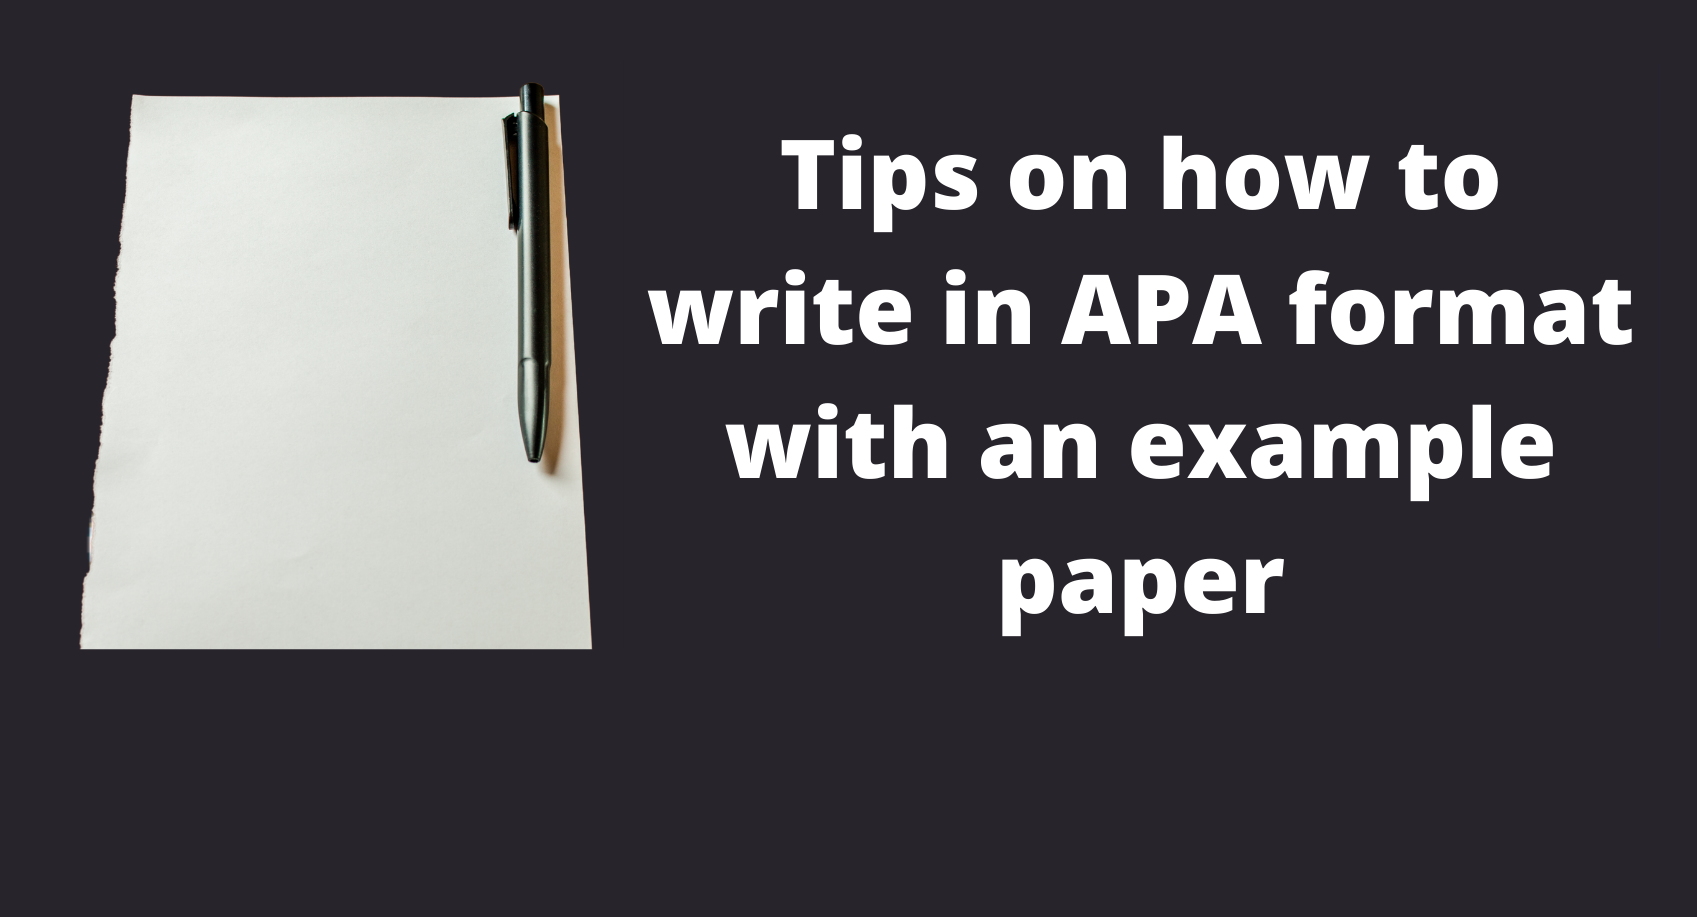 Tips on how to write in APA format with an example paper